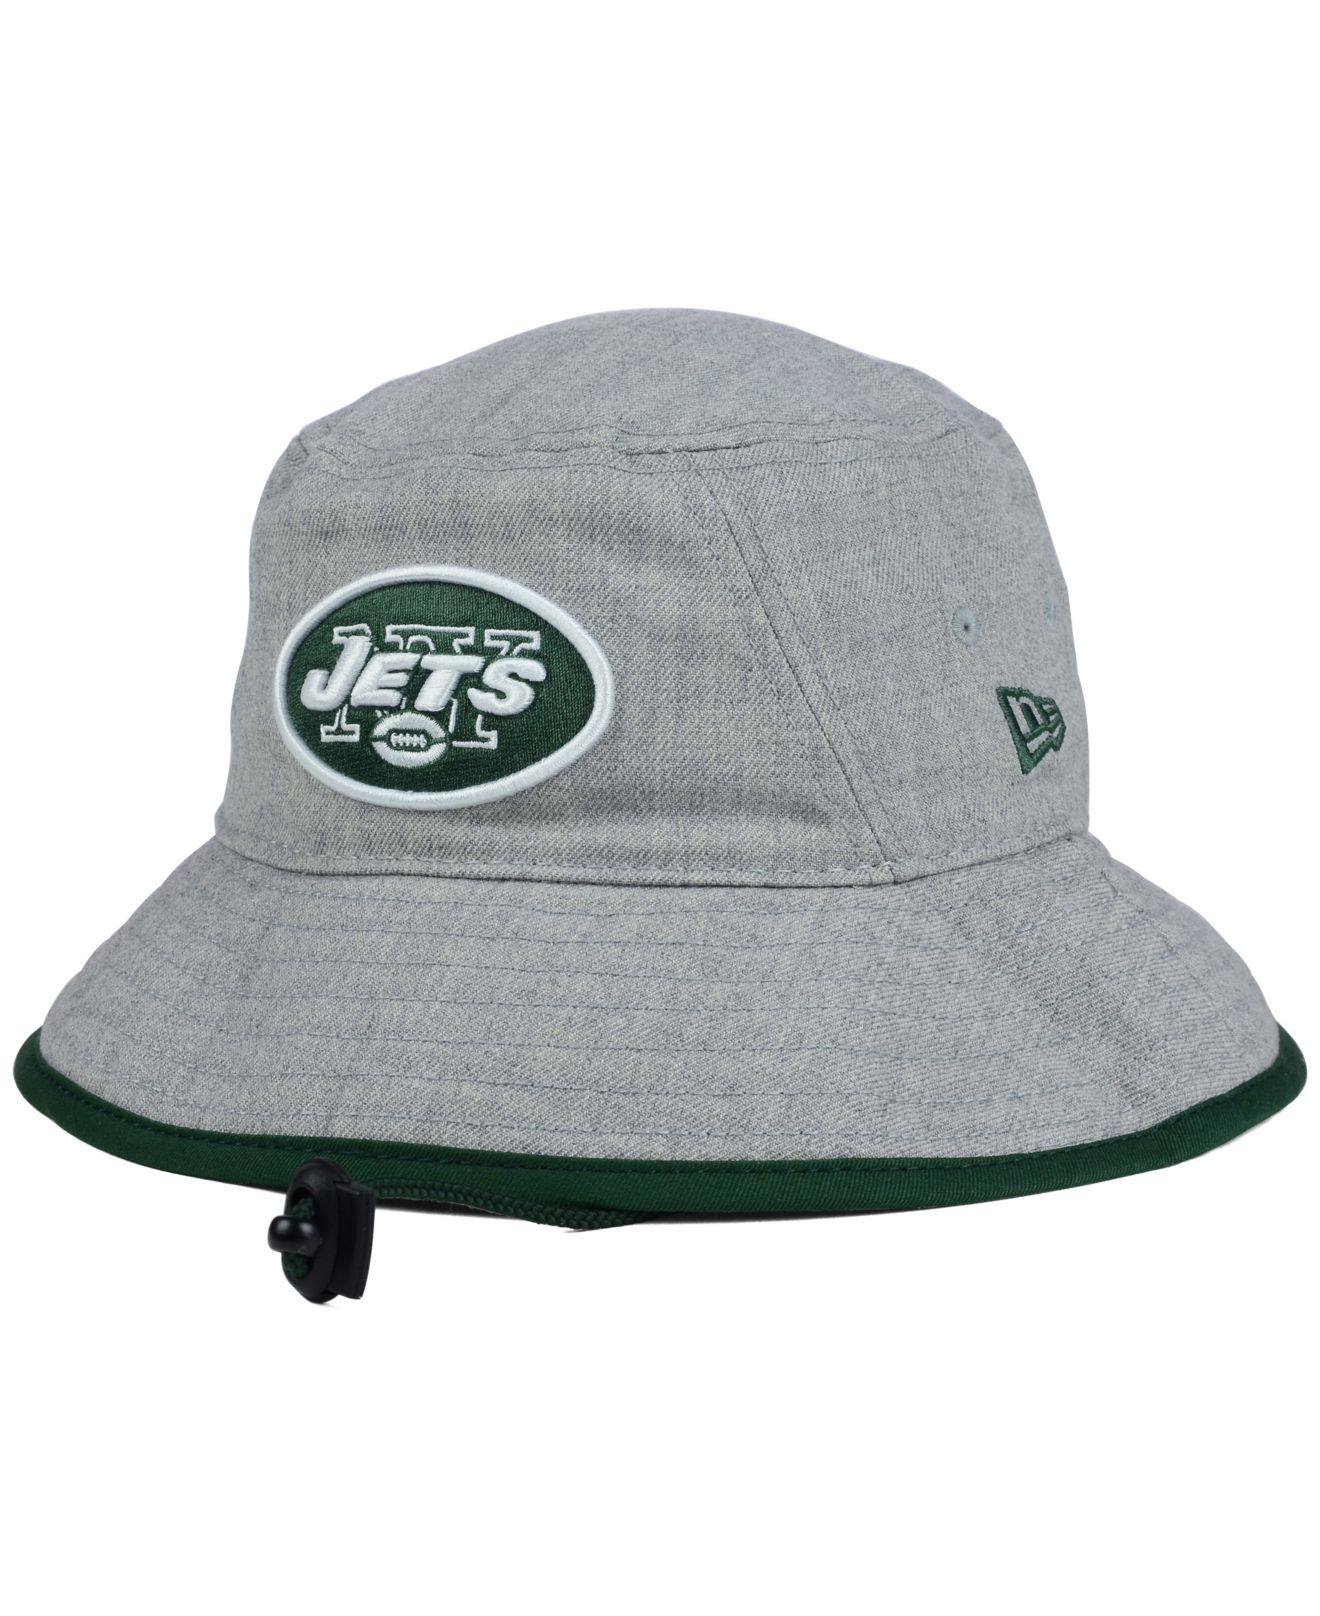 5483a93934c norway lyst ktz new york jets nfl heather gray bucket hat in gray dbcd3  41a63